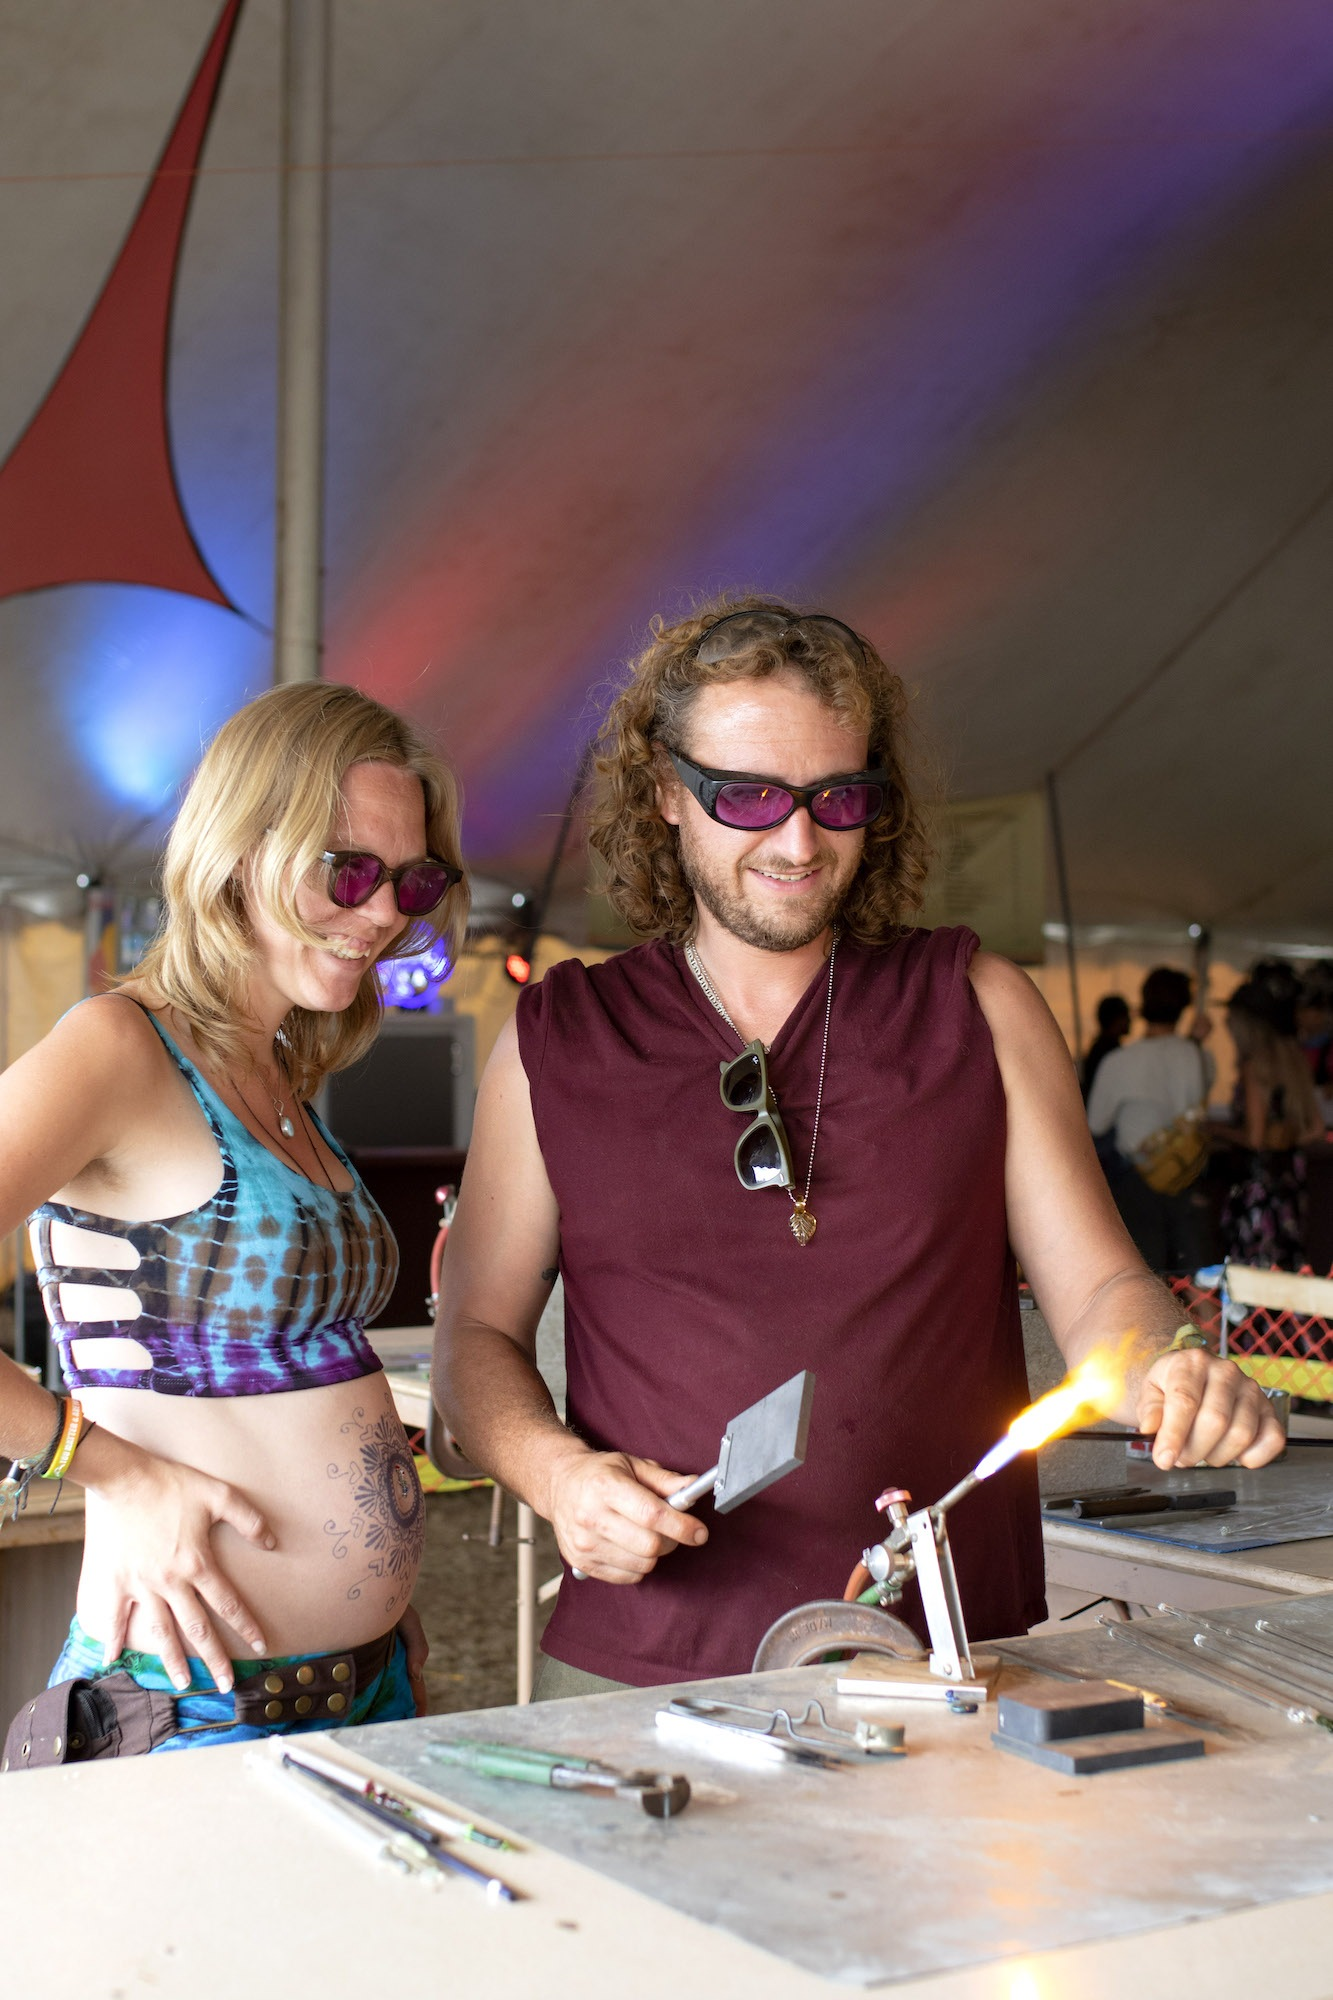 Summer Camp Music Fest - Day 1 [GALLERY] 31